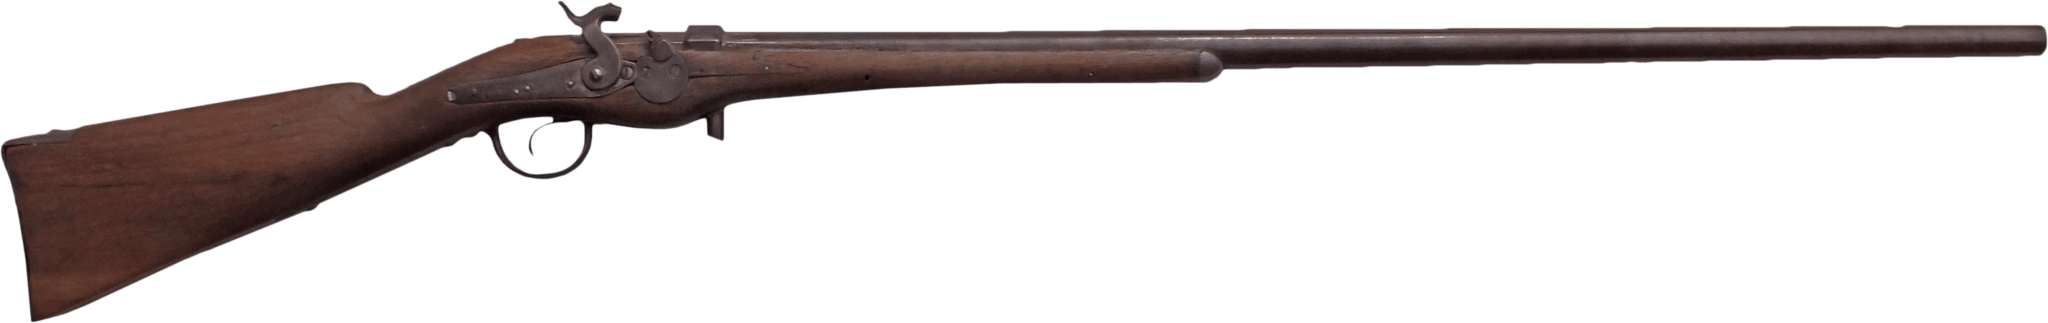 One Of A Kind American Breech Loading Rifle C.1840-1850 - Product